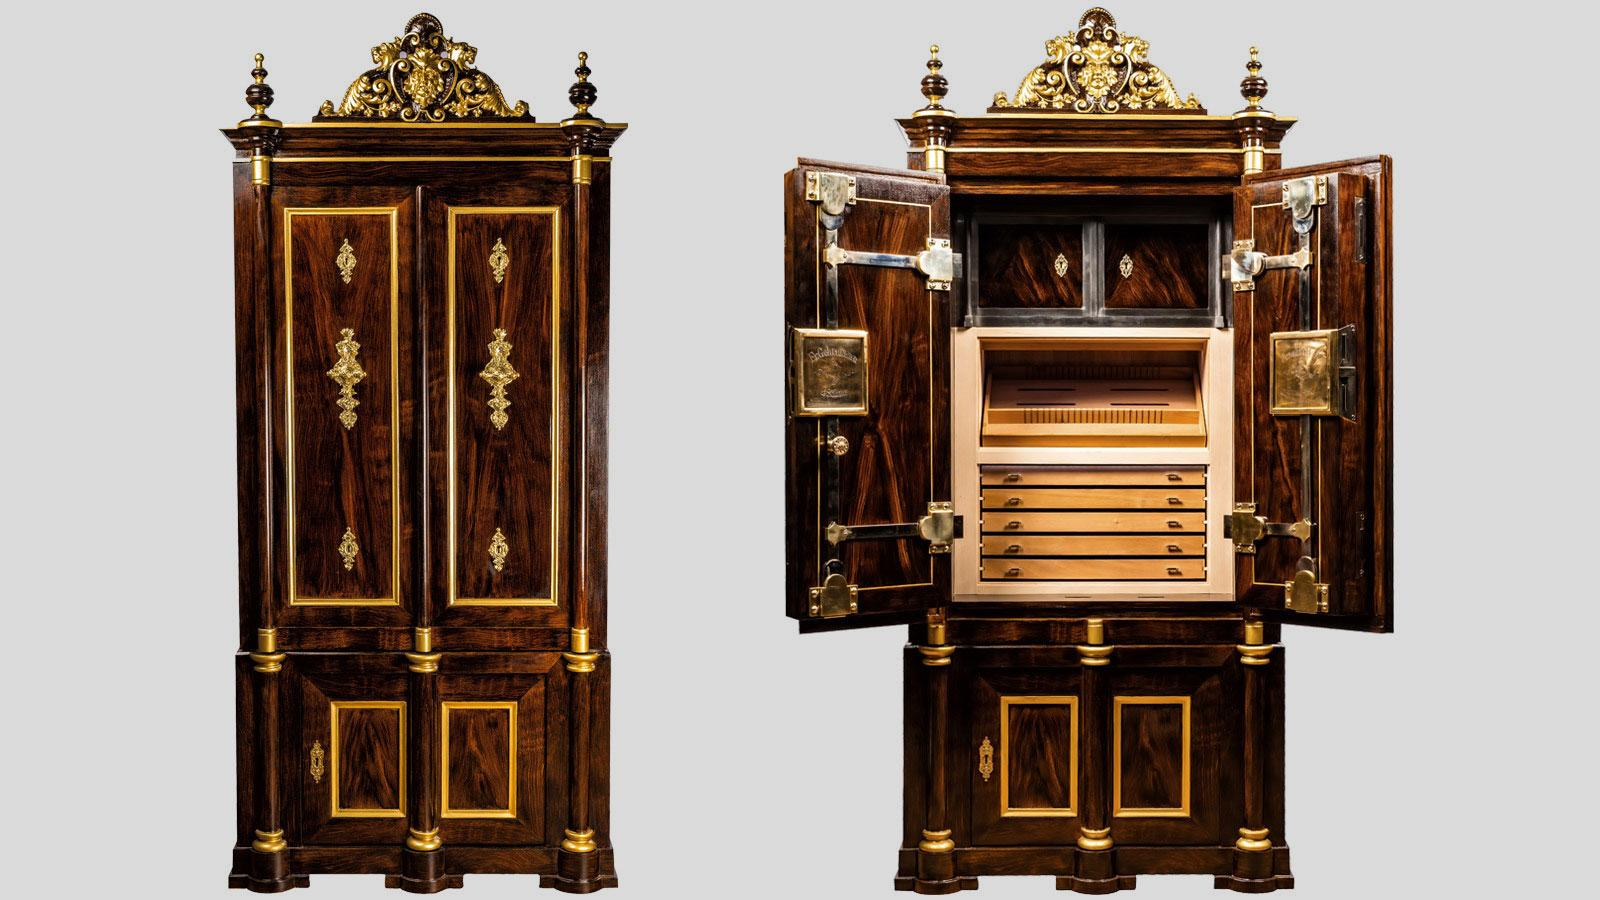 An $80,000 Humidor From Adorini